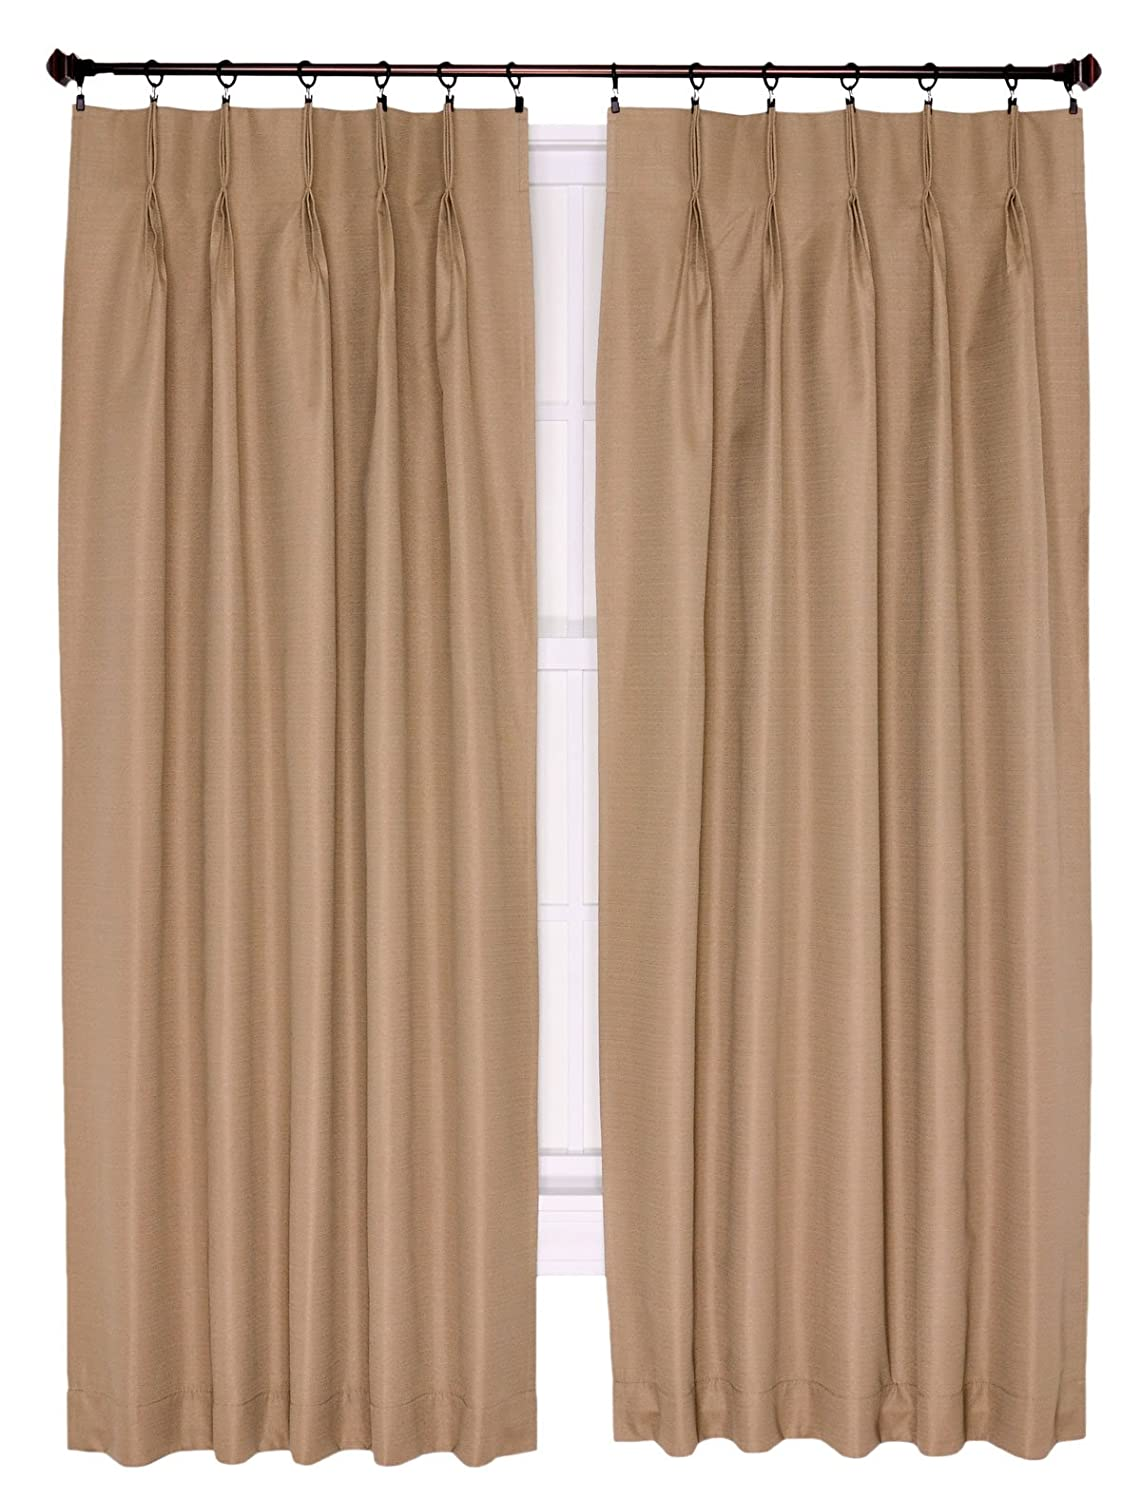 curtains drapes pleat with designs patio panel pinch warm flat magnificent decorations valance